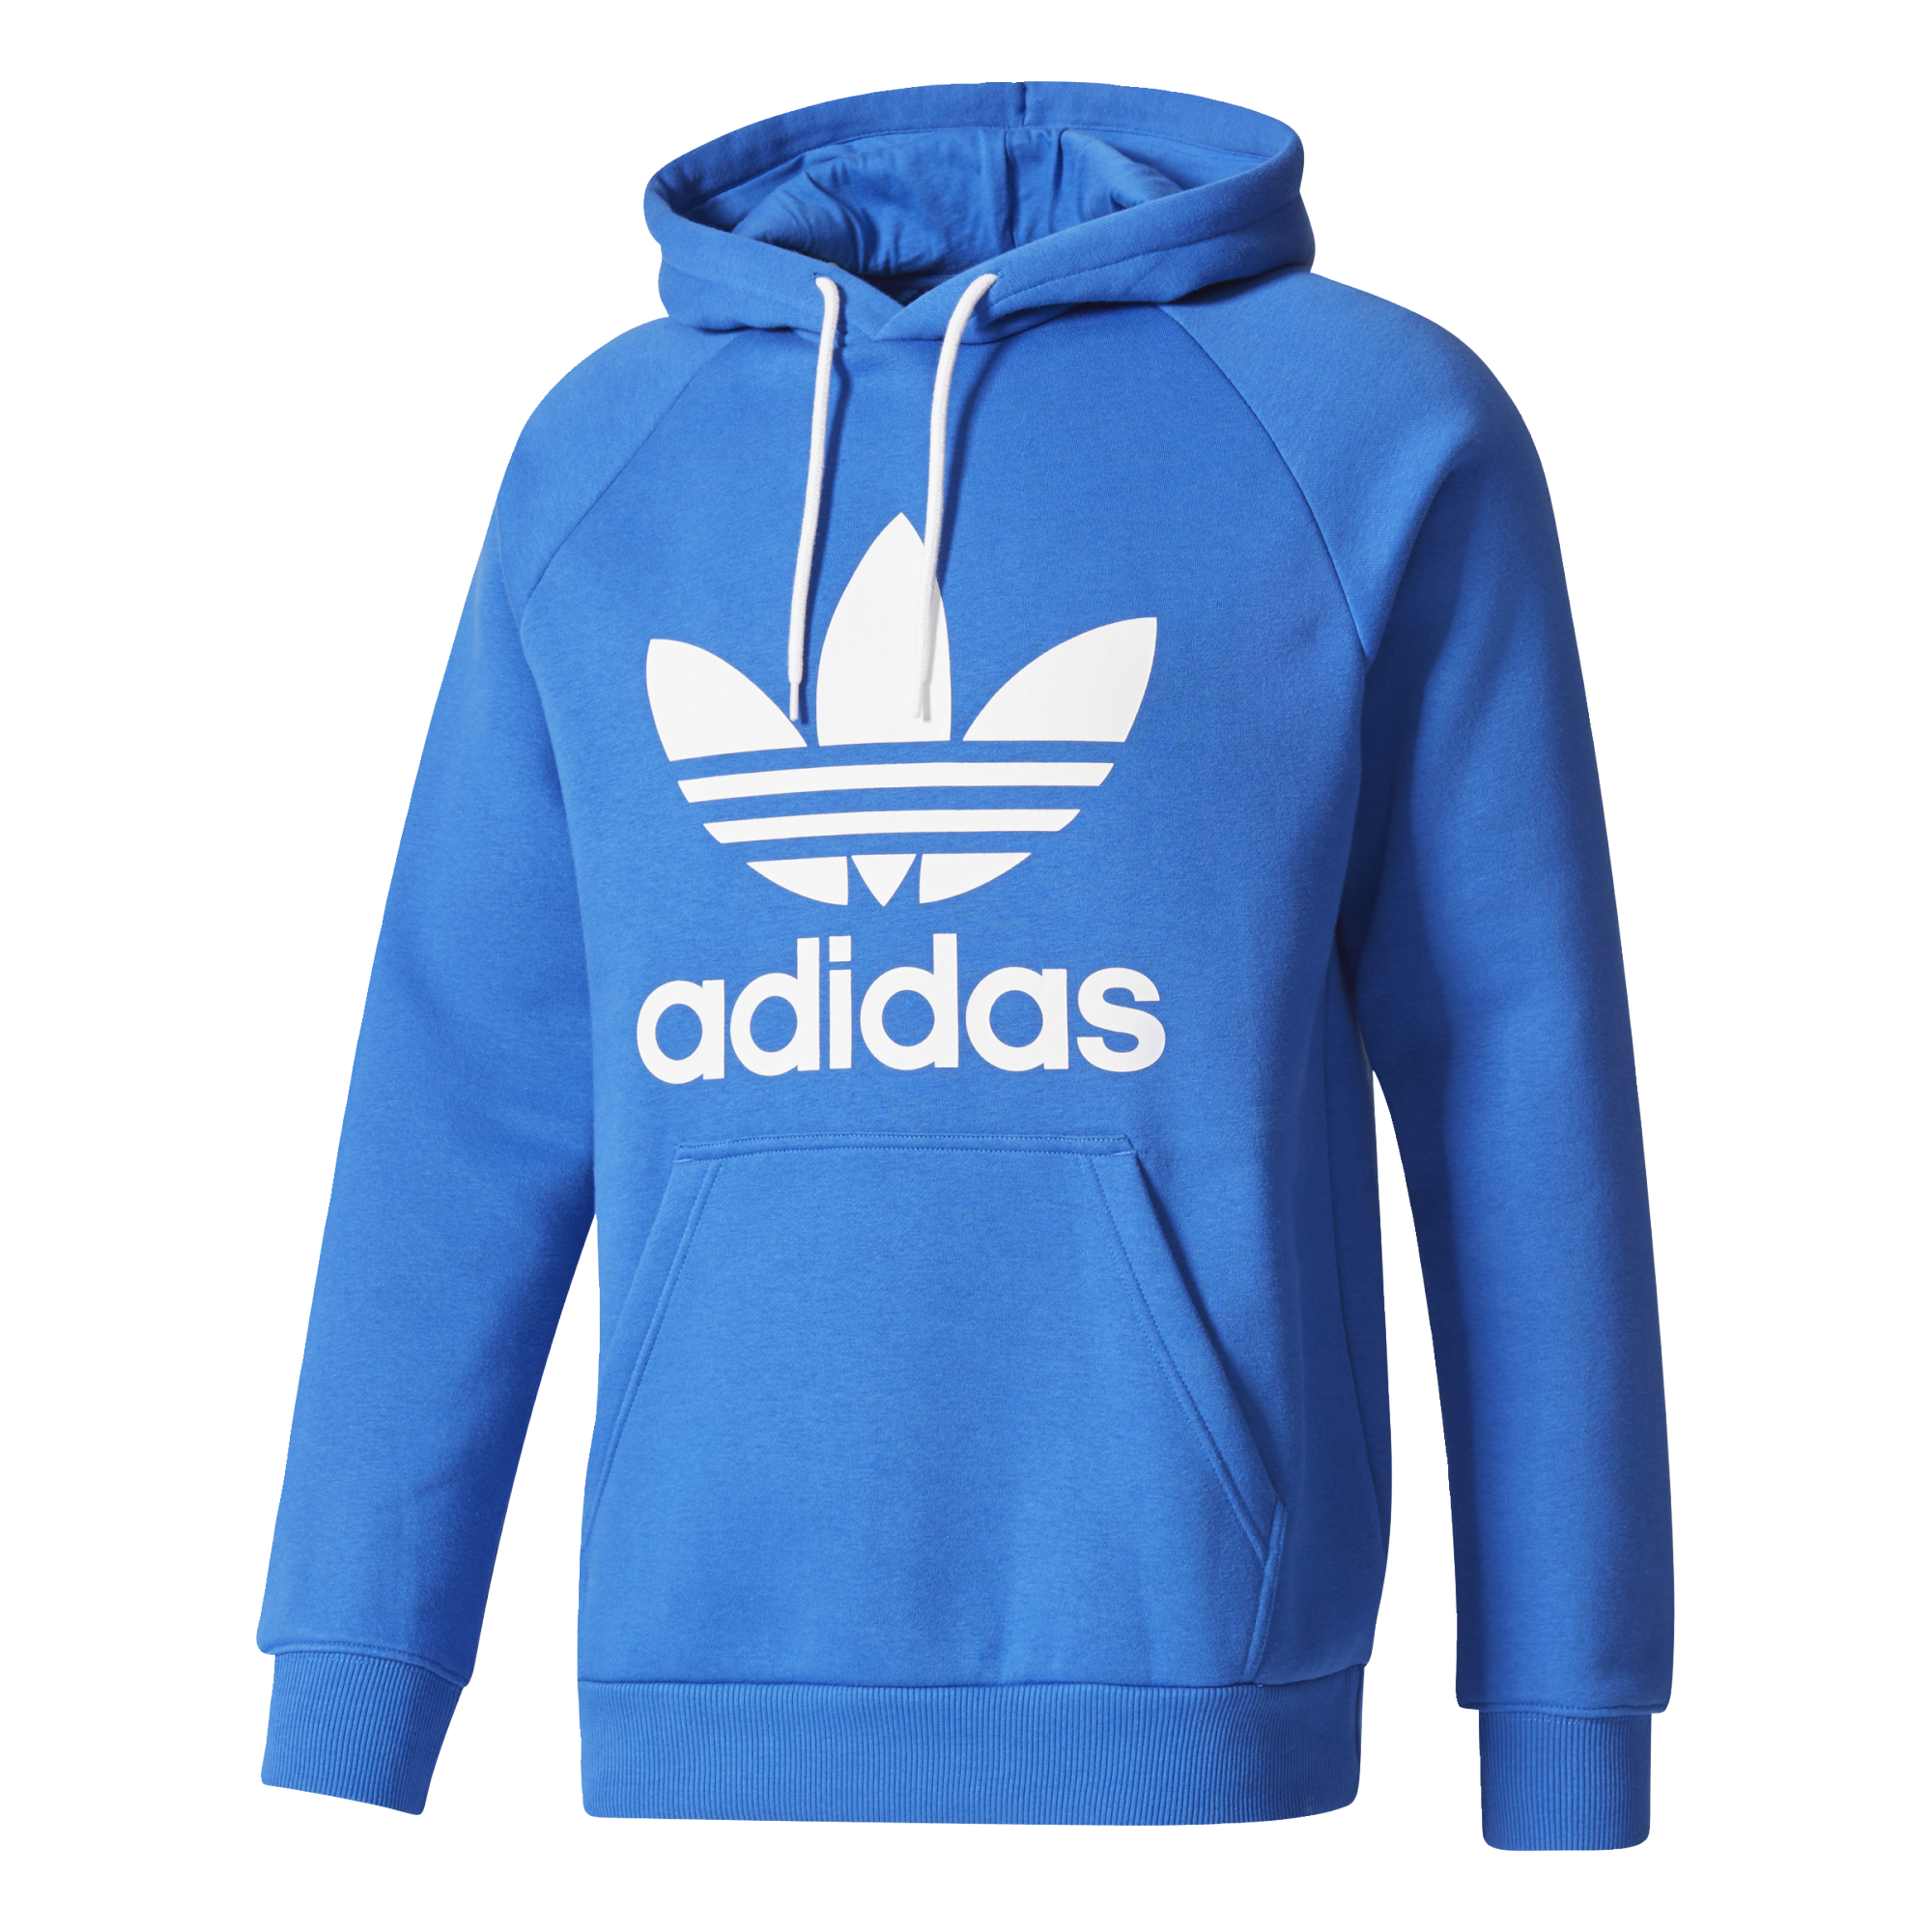 adidas trefoil hoodie privesports cyprus online shop. Black Bedroom Furniture Sets. Home Design Ideas